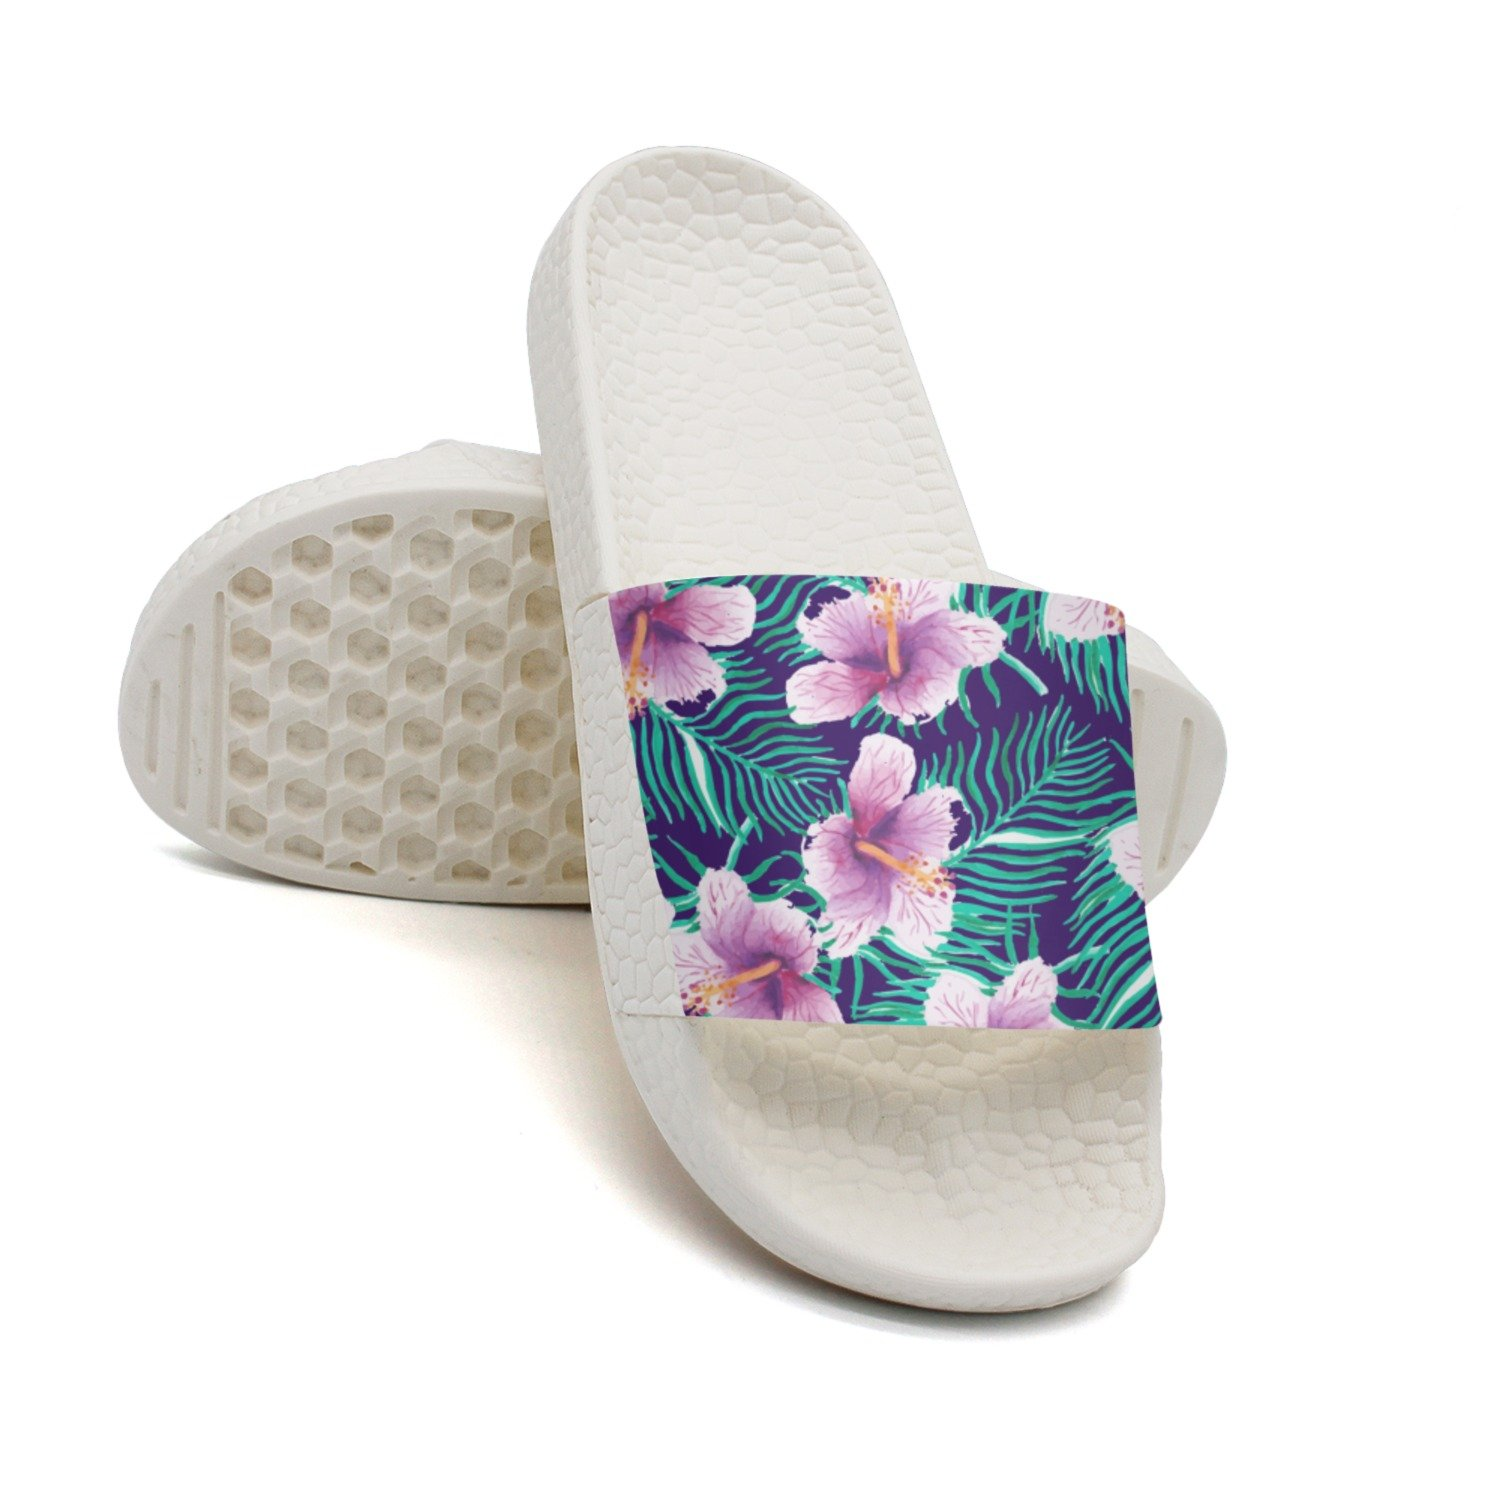 Ether Dobbin Unisex Hawaiian Flower Anti-Slip Slippers Athletic Slide Sandals